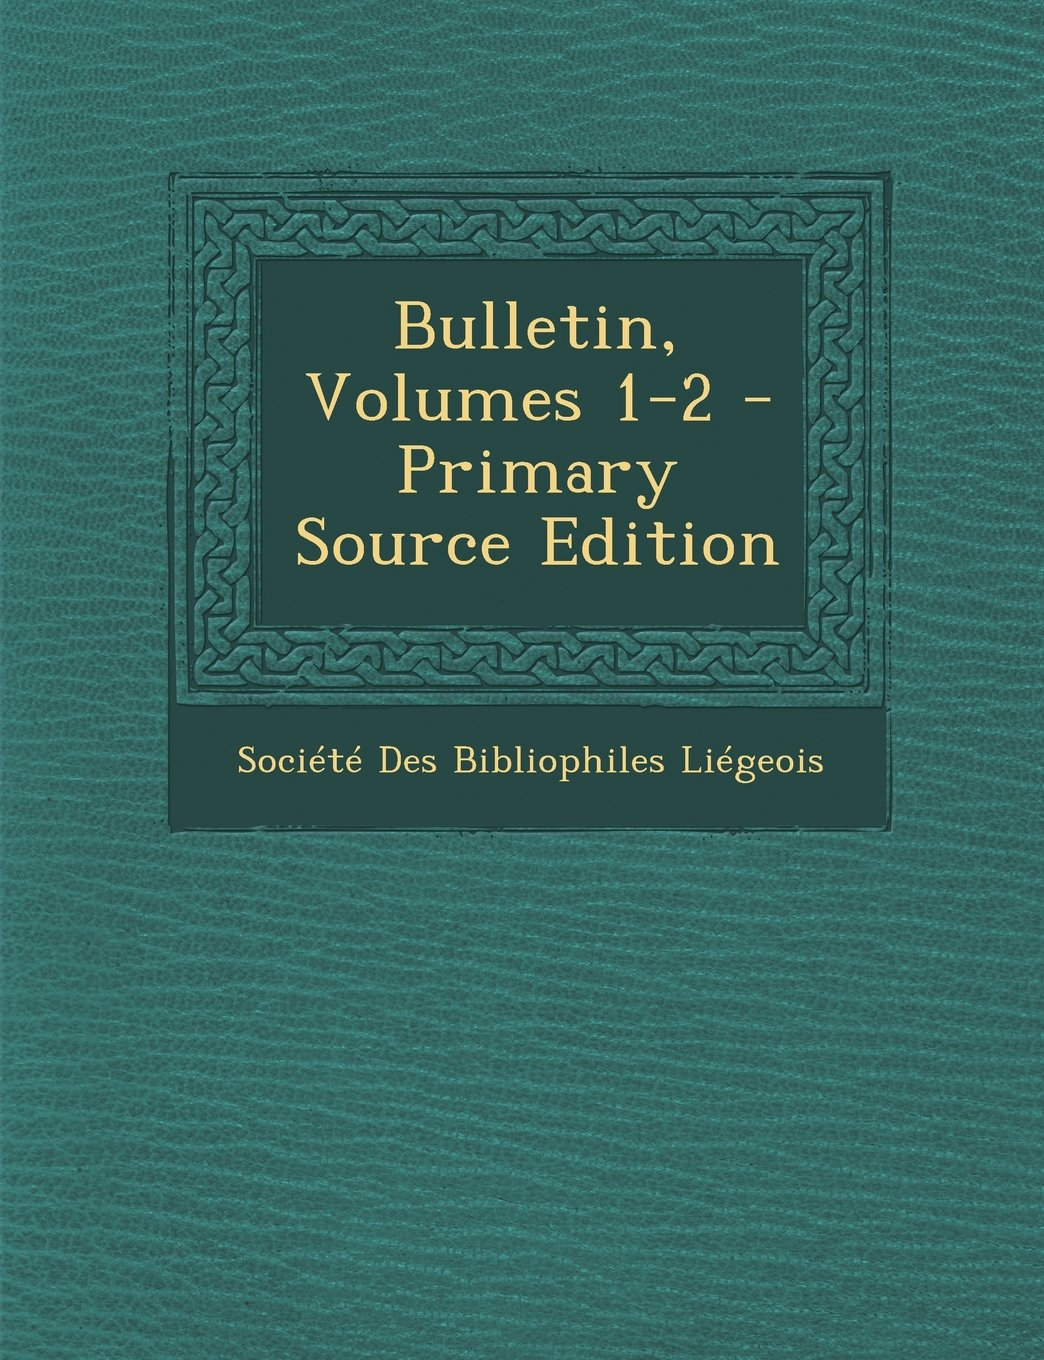 Read Online Bulletin, Volumes 1-2 - Primary Source Edition (French Edition) pdf